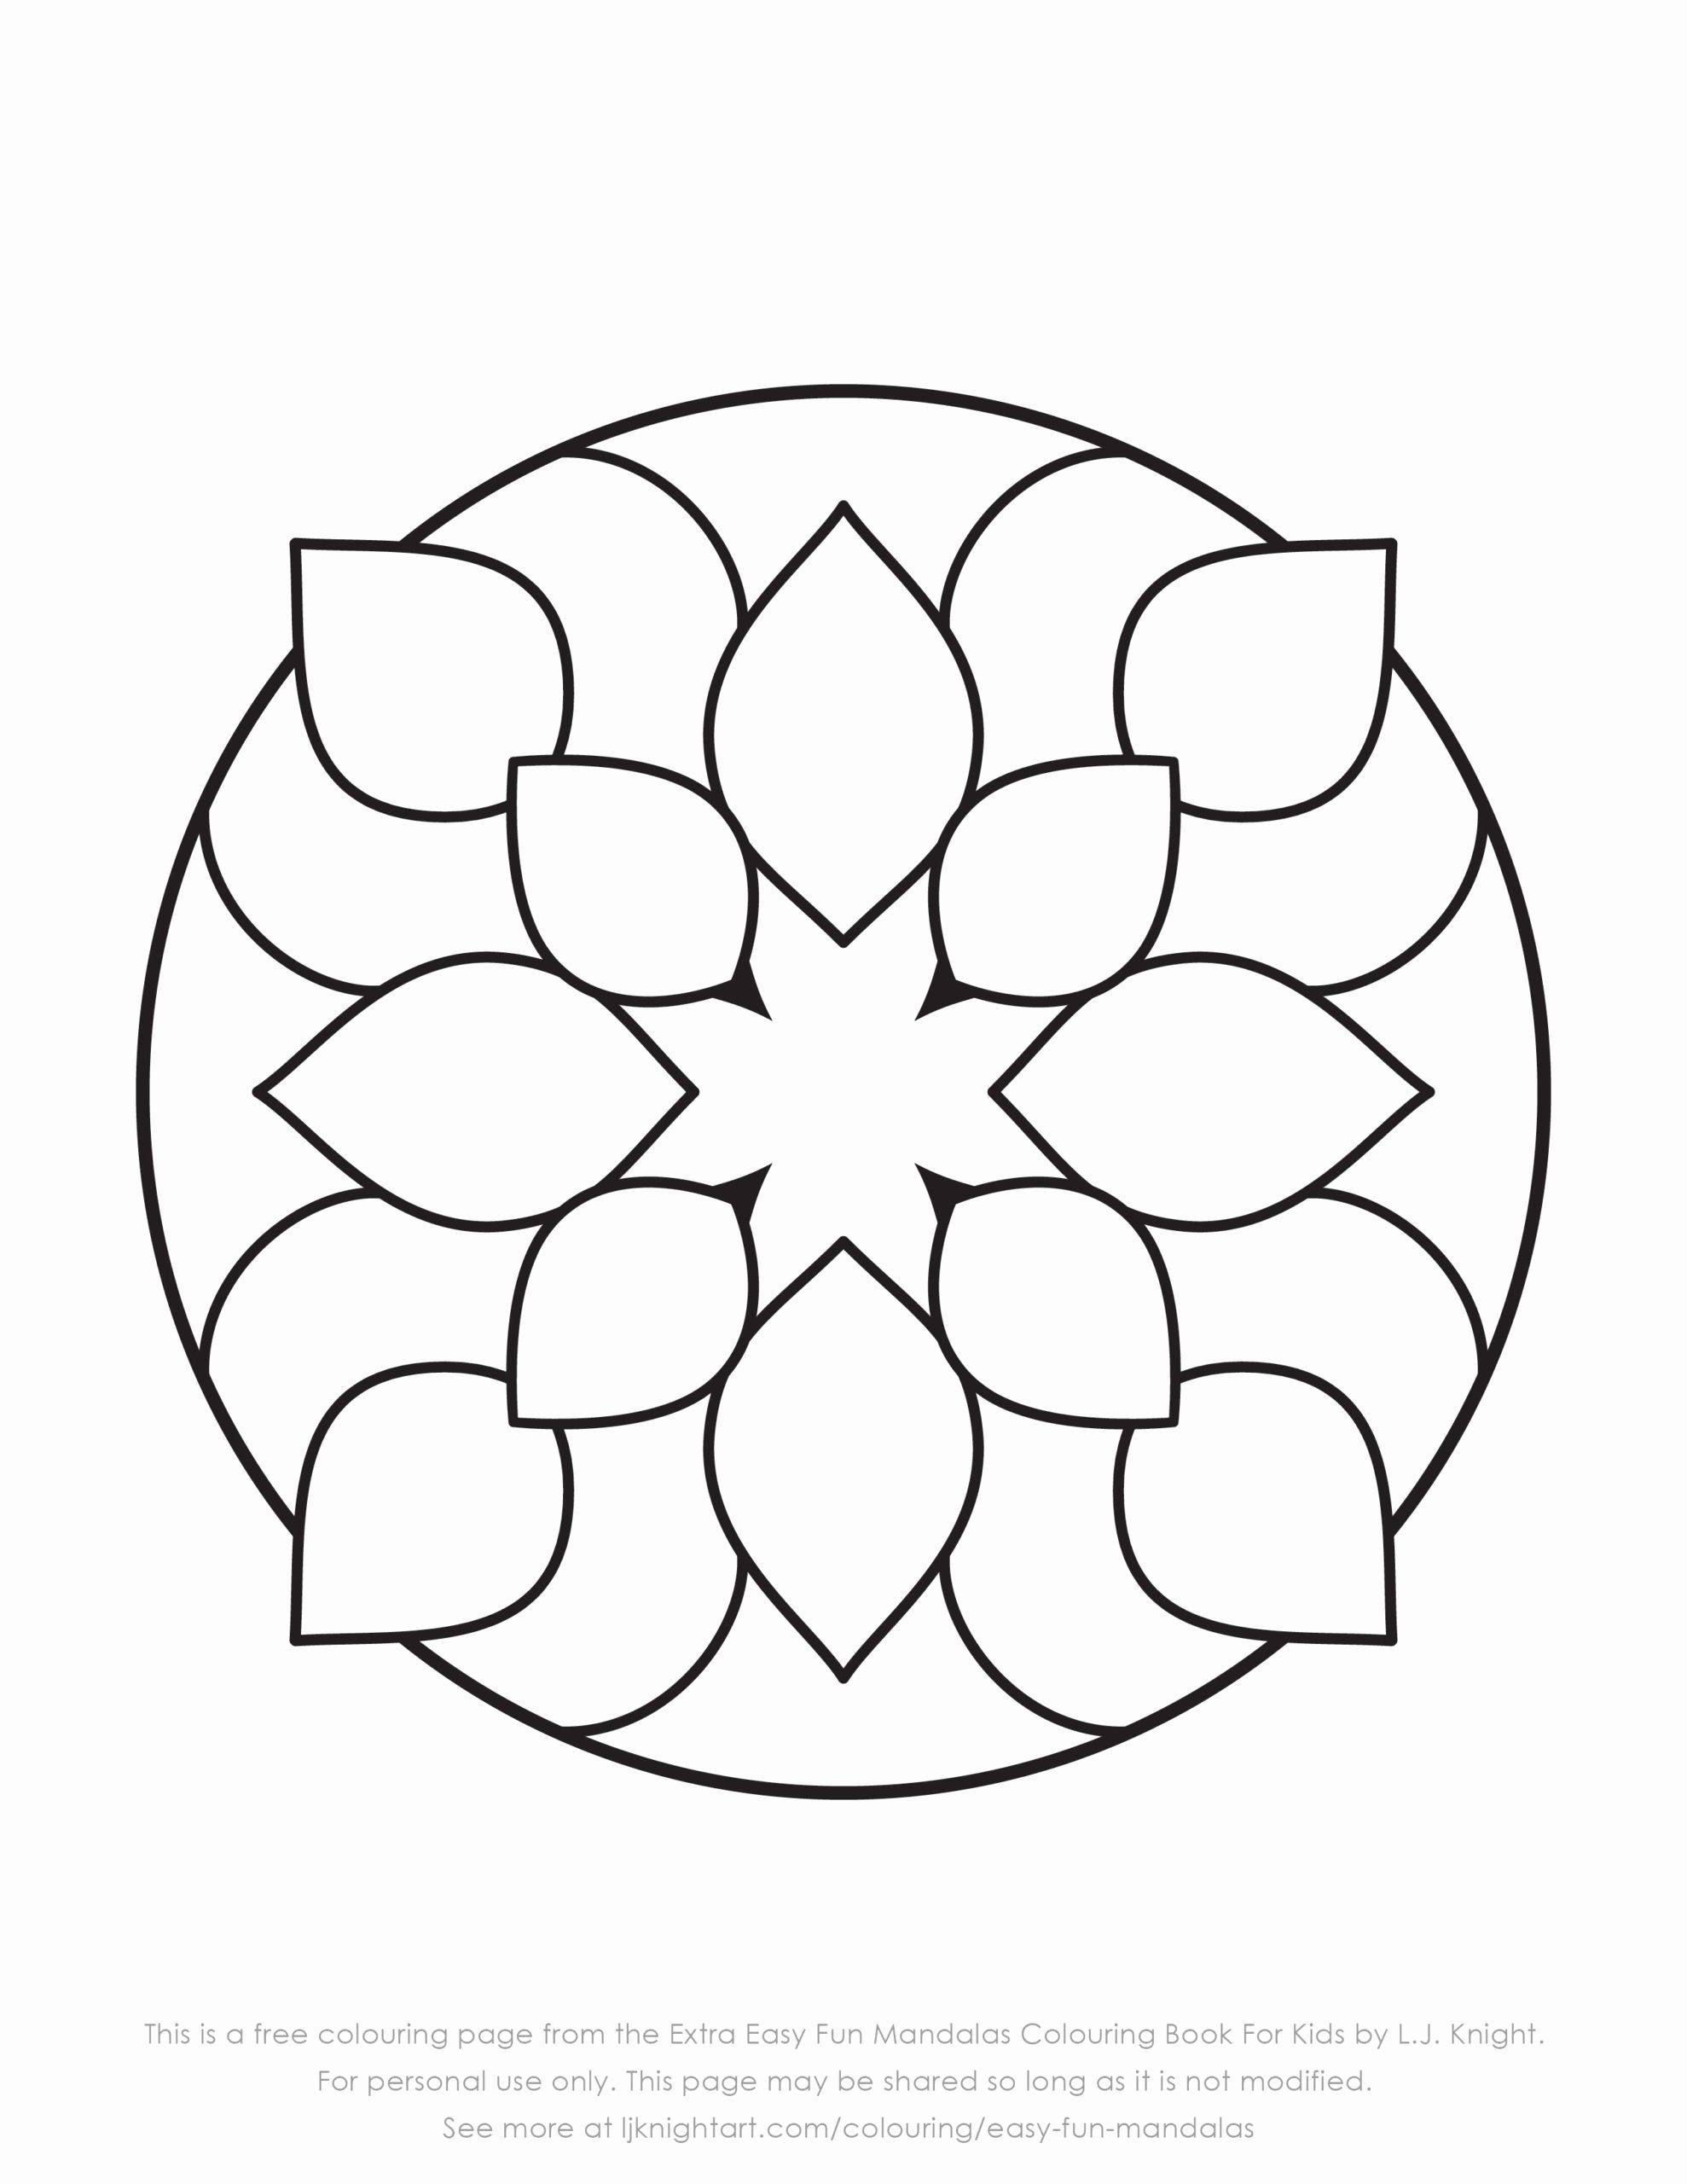 Coloring Pages For Kids Butterfly Luxury Coloring Pages Coloring Book Simple Mandala For Kids To Mandala Coloring Pages Mandala Coloring Easy Coloring Pages